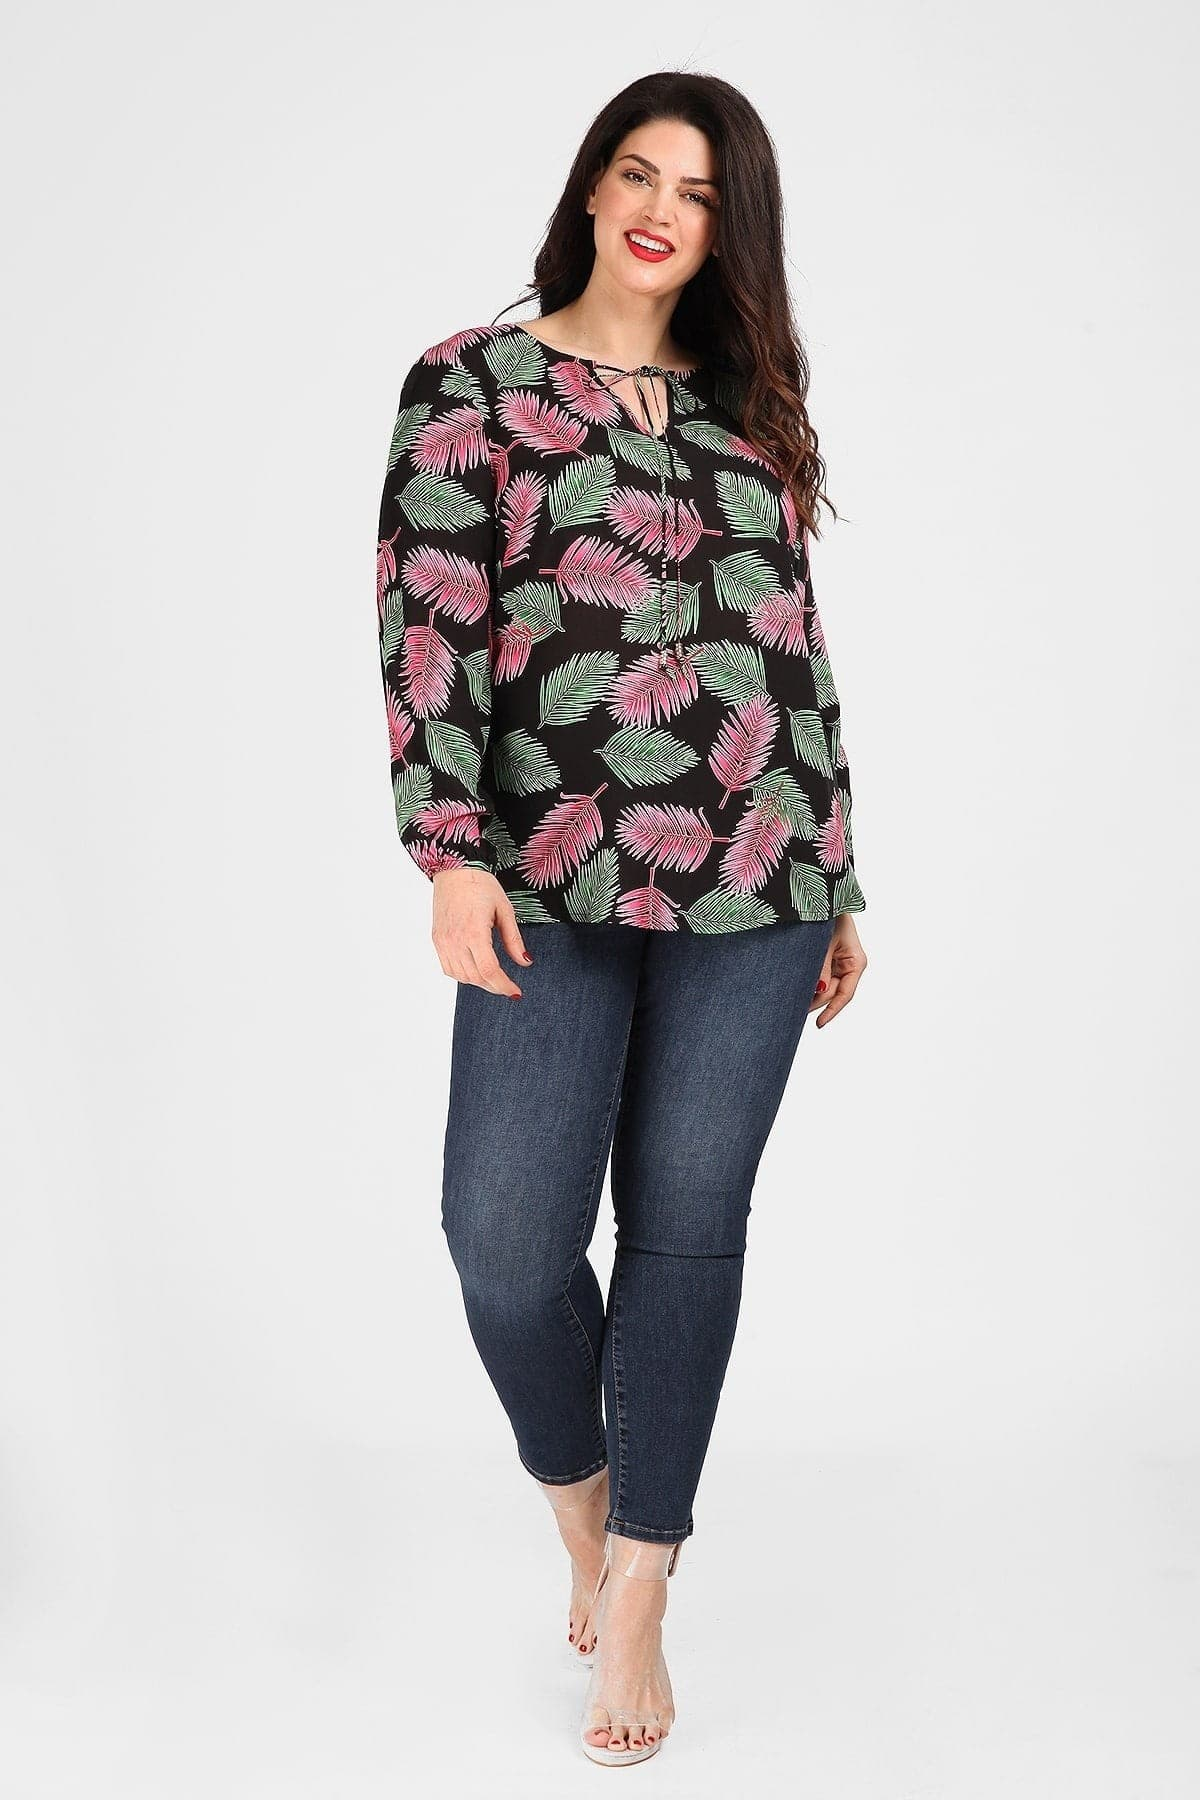 Shirtblouse in tropical print with ties